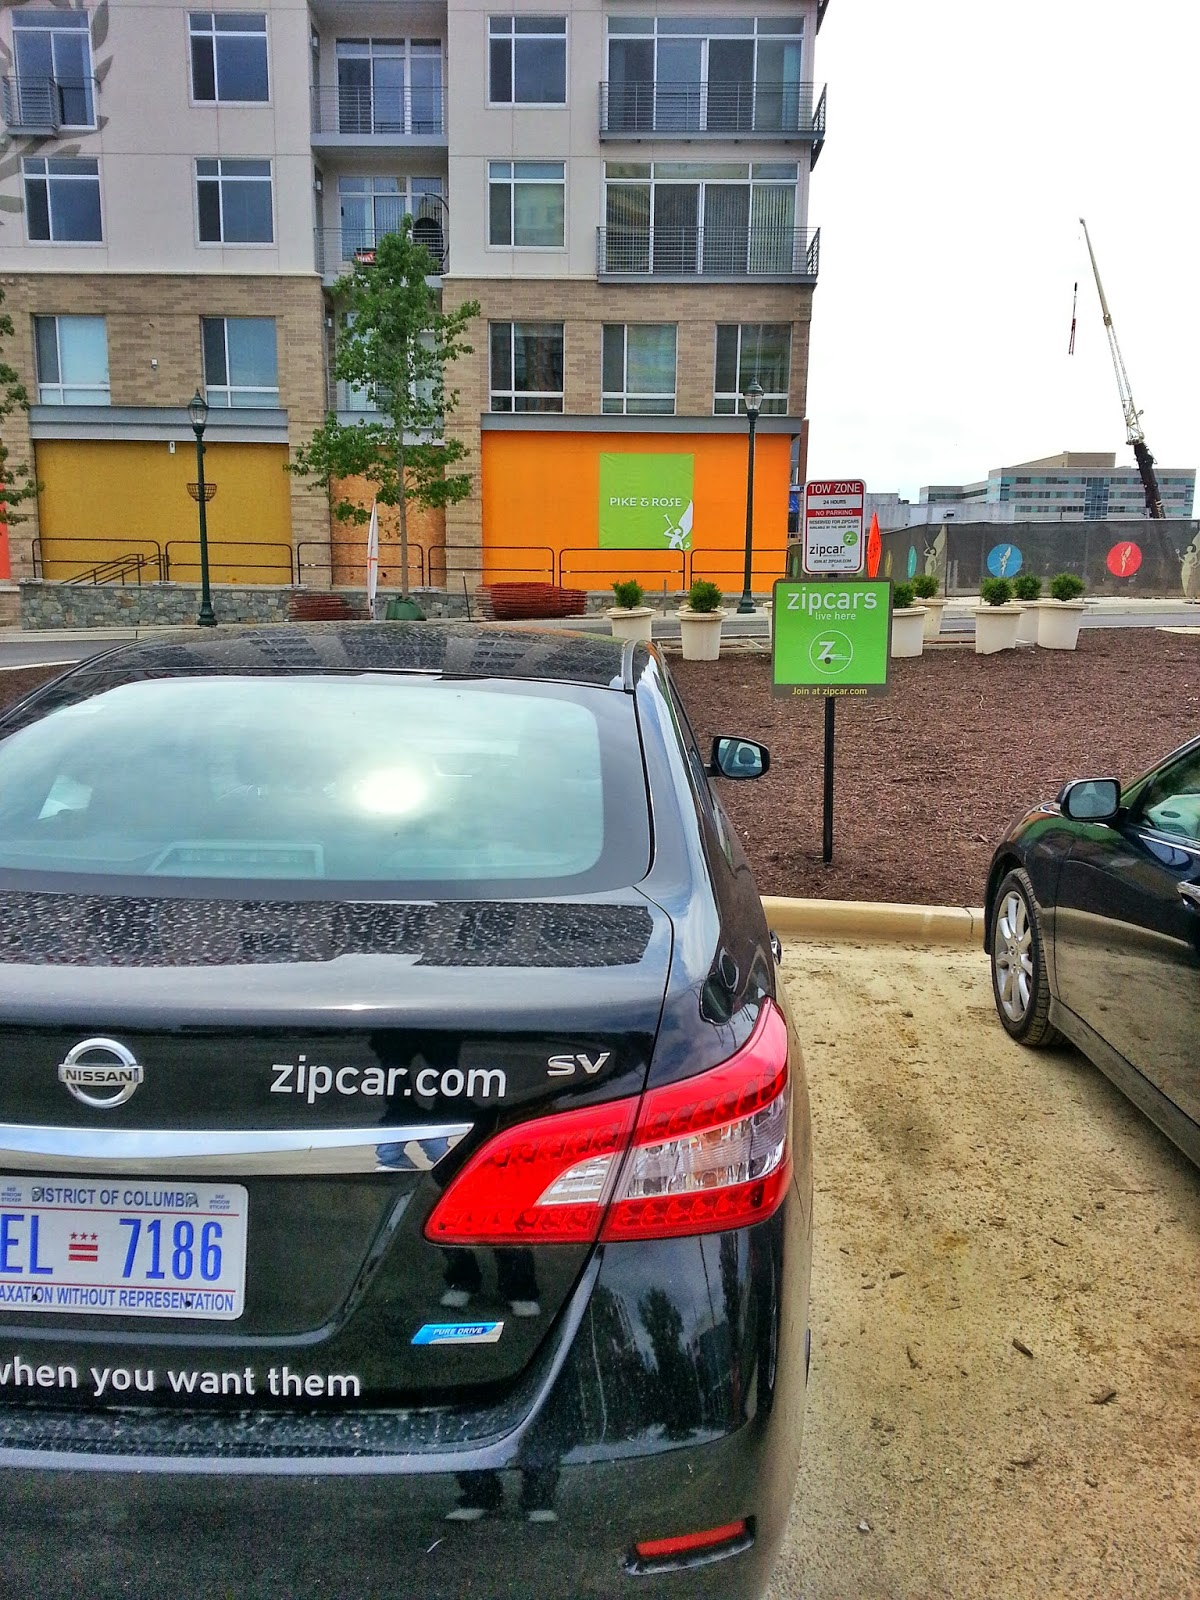 Robert Dyer Bethesda Row ZIPCARS ON SITE AT PIKE AND ROSE PHOTO